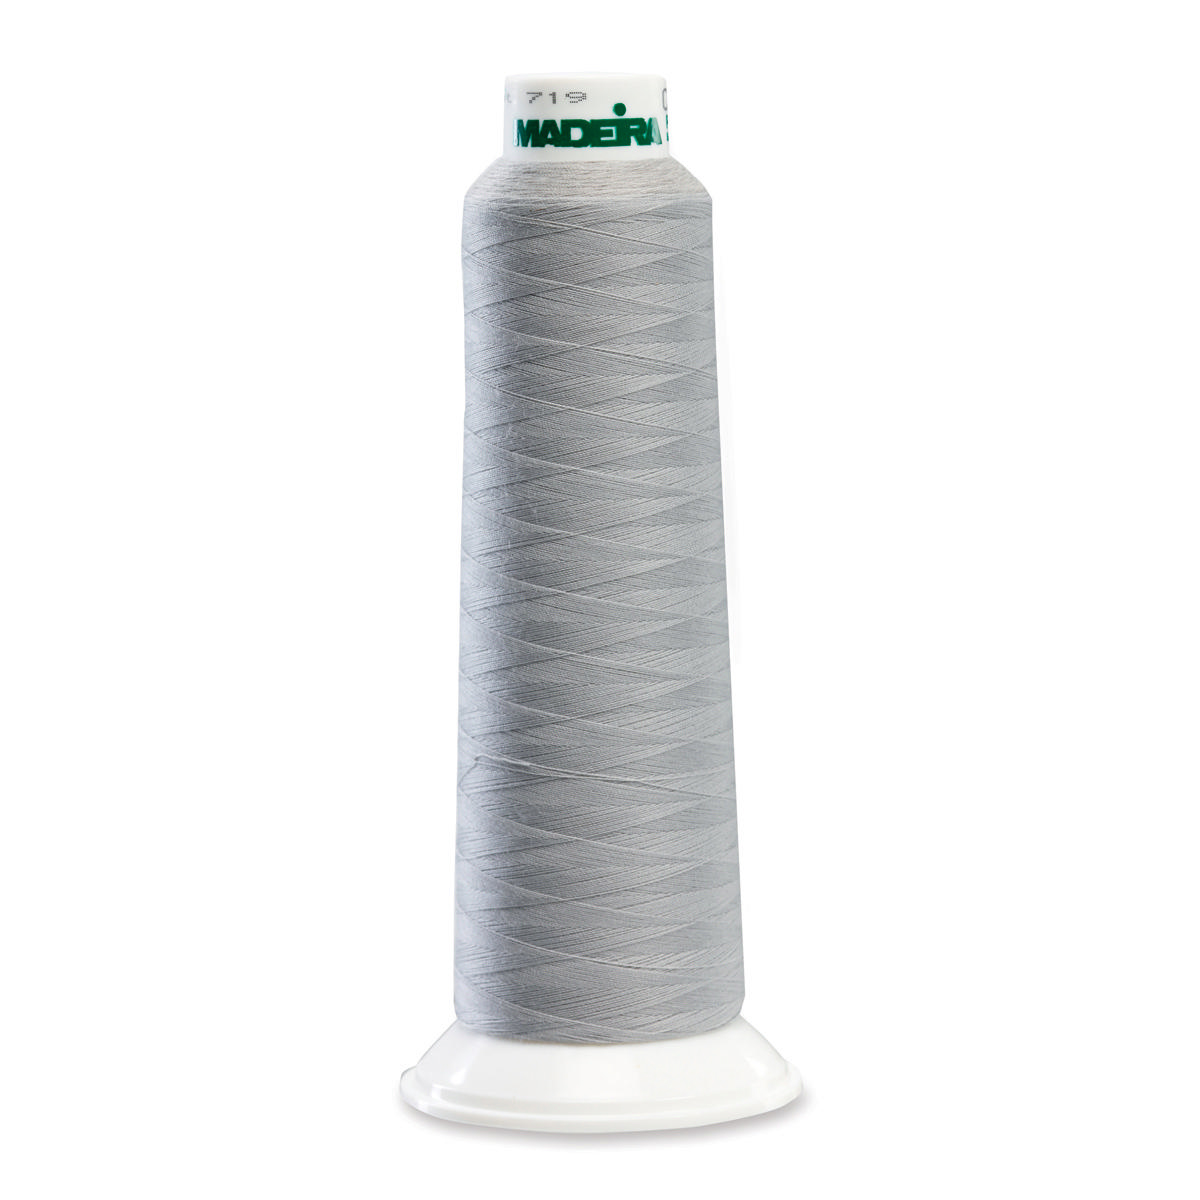 8100 Light Grey Poly Serger Thread Madeira Aerolock